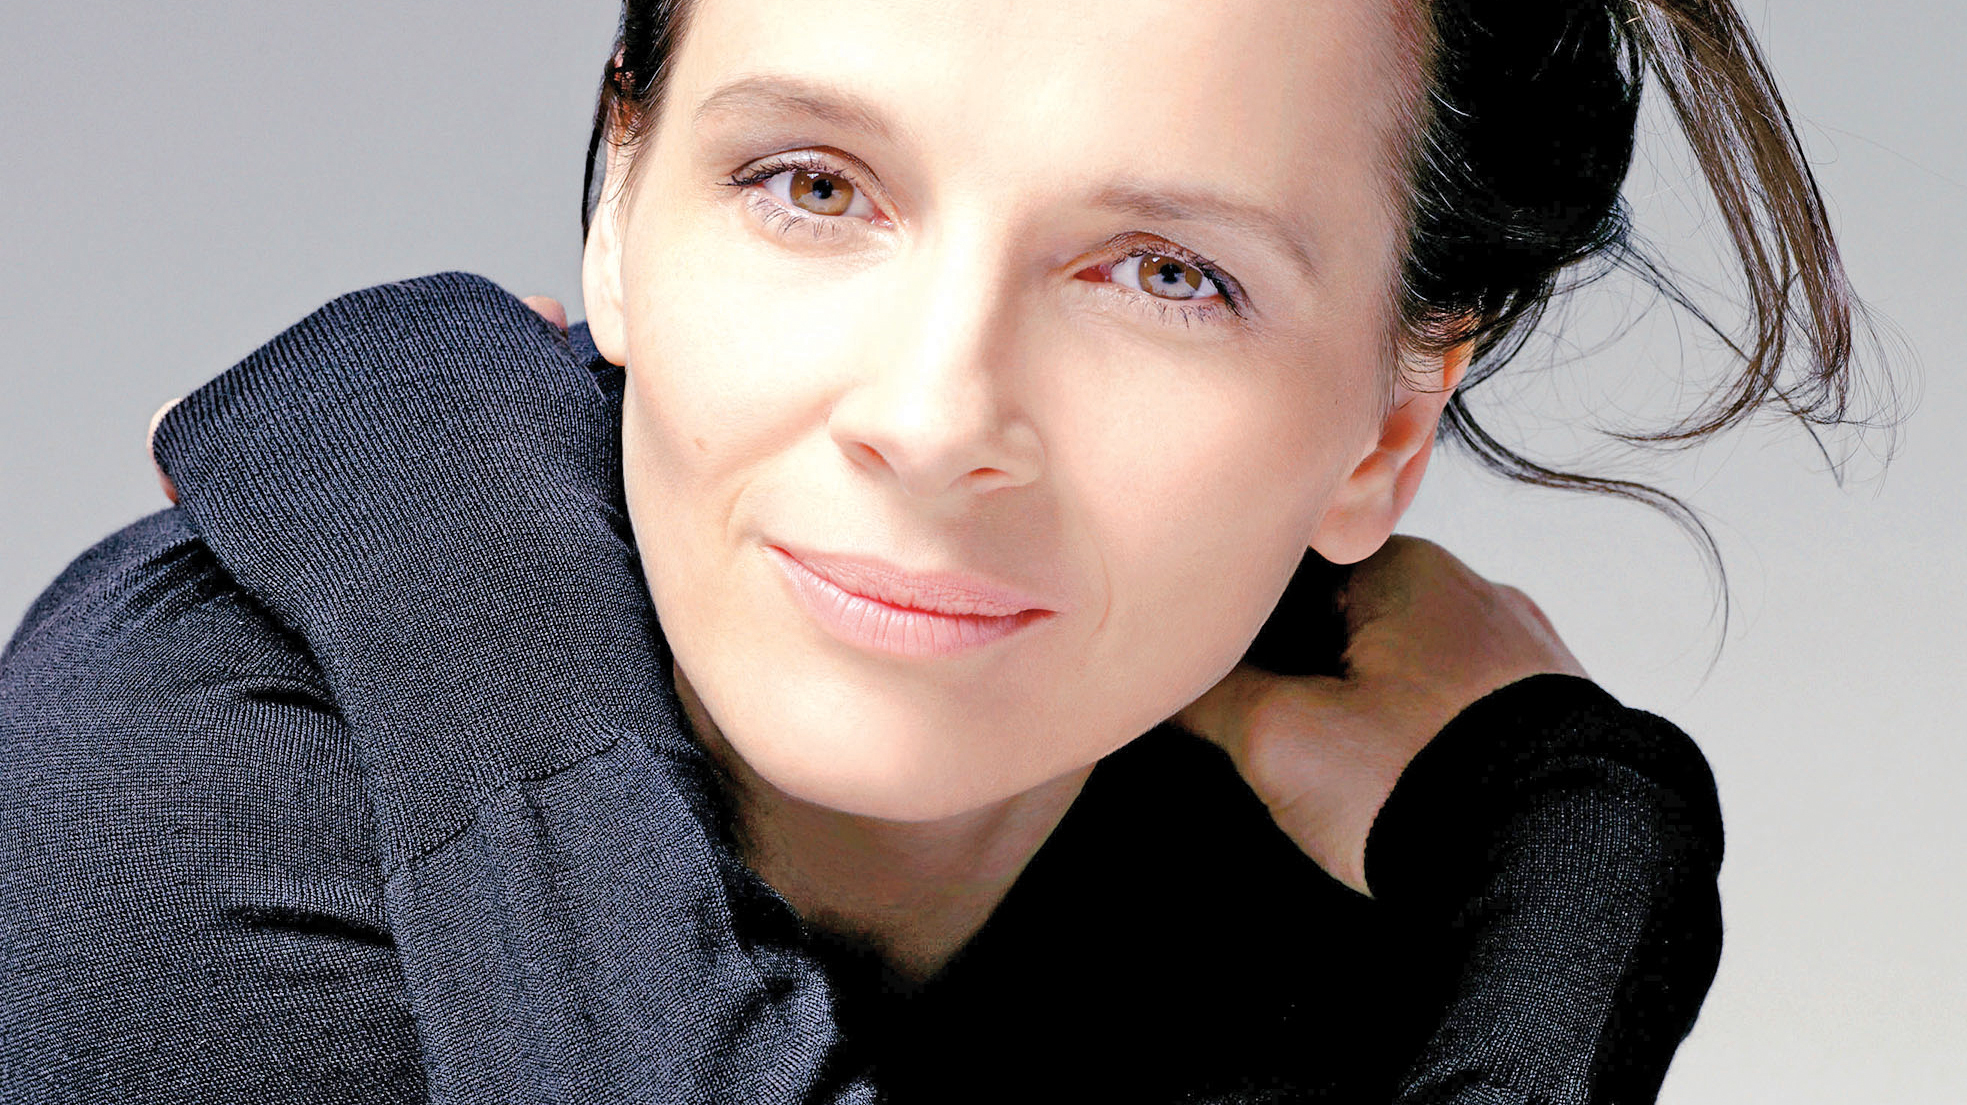 Juliette Binoche on the seduction of acting